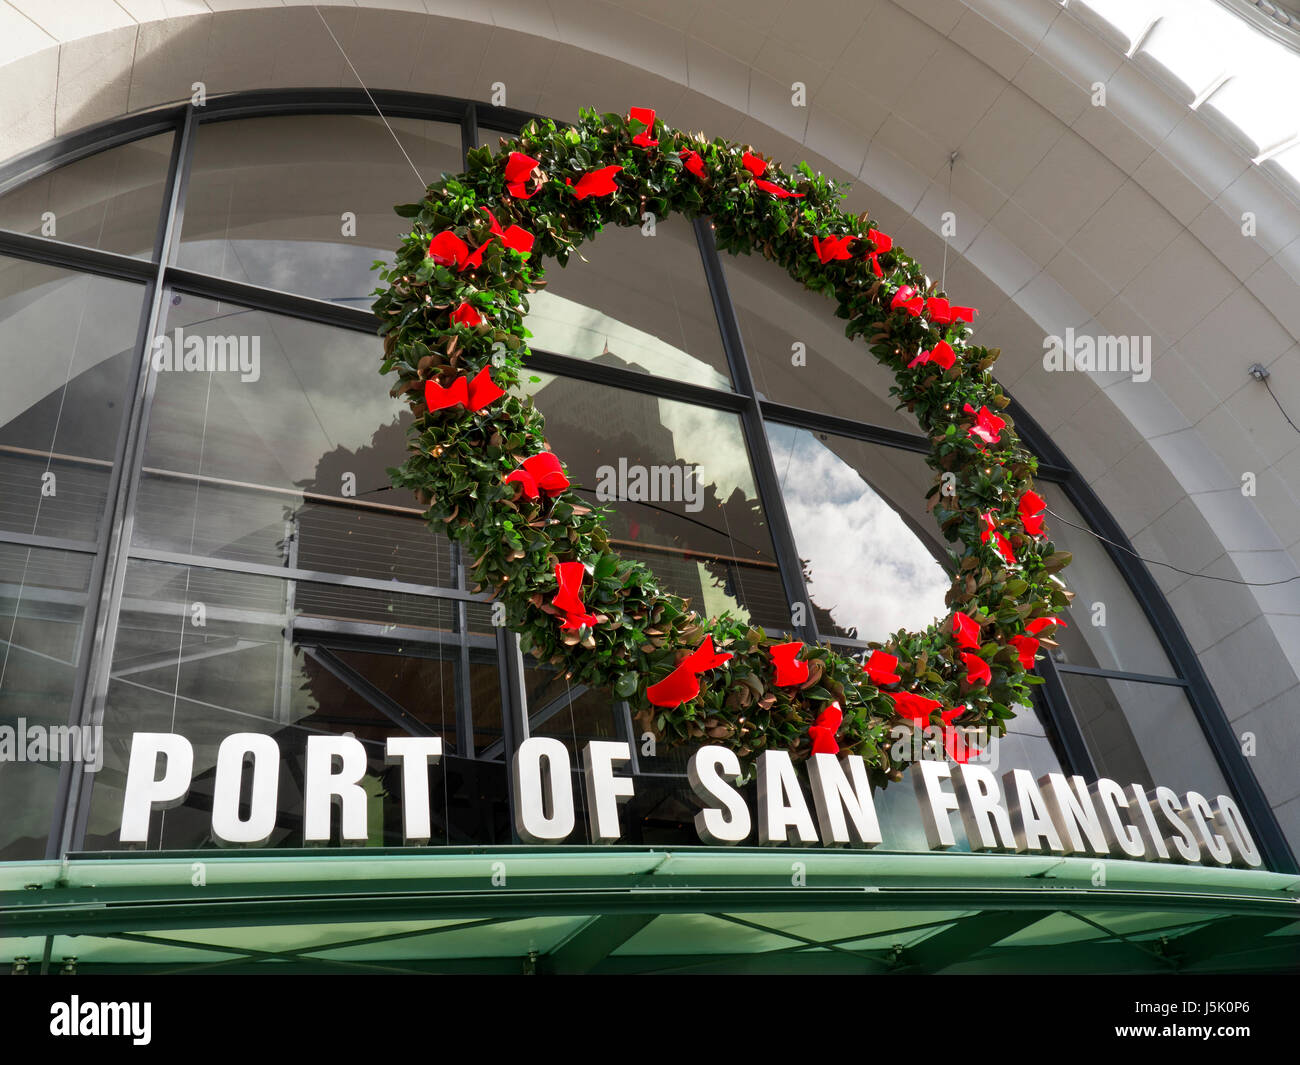 Thanksgiving / Christmas wreath on entrance to Port of San Francisco embarcation piers Embarcadero California USA - Stock Image